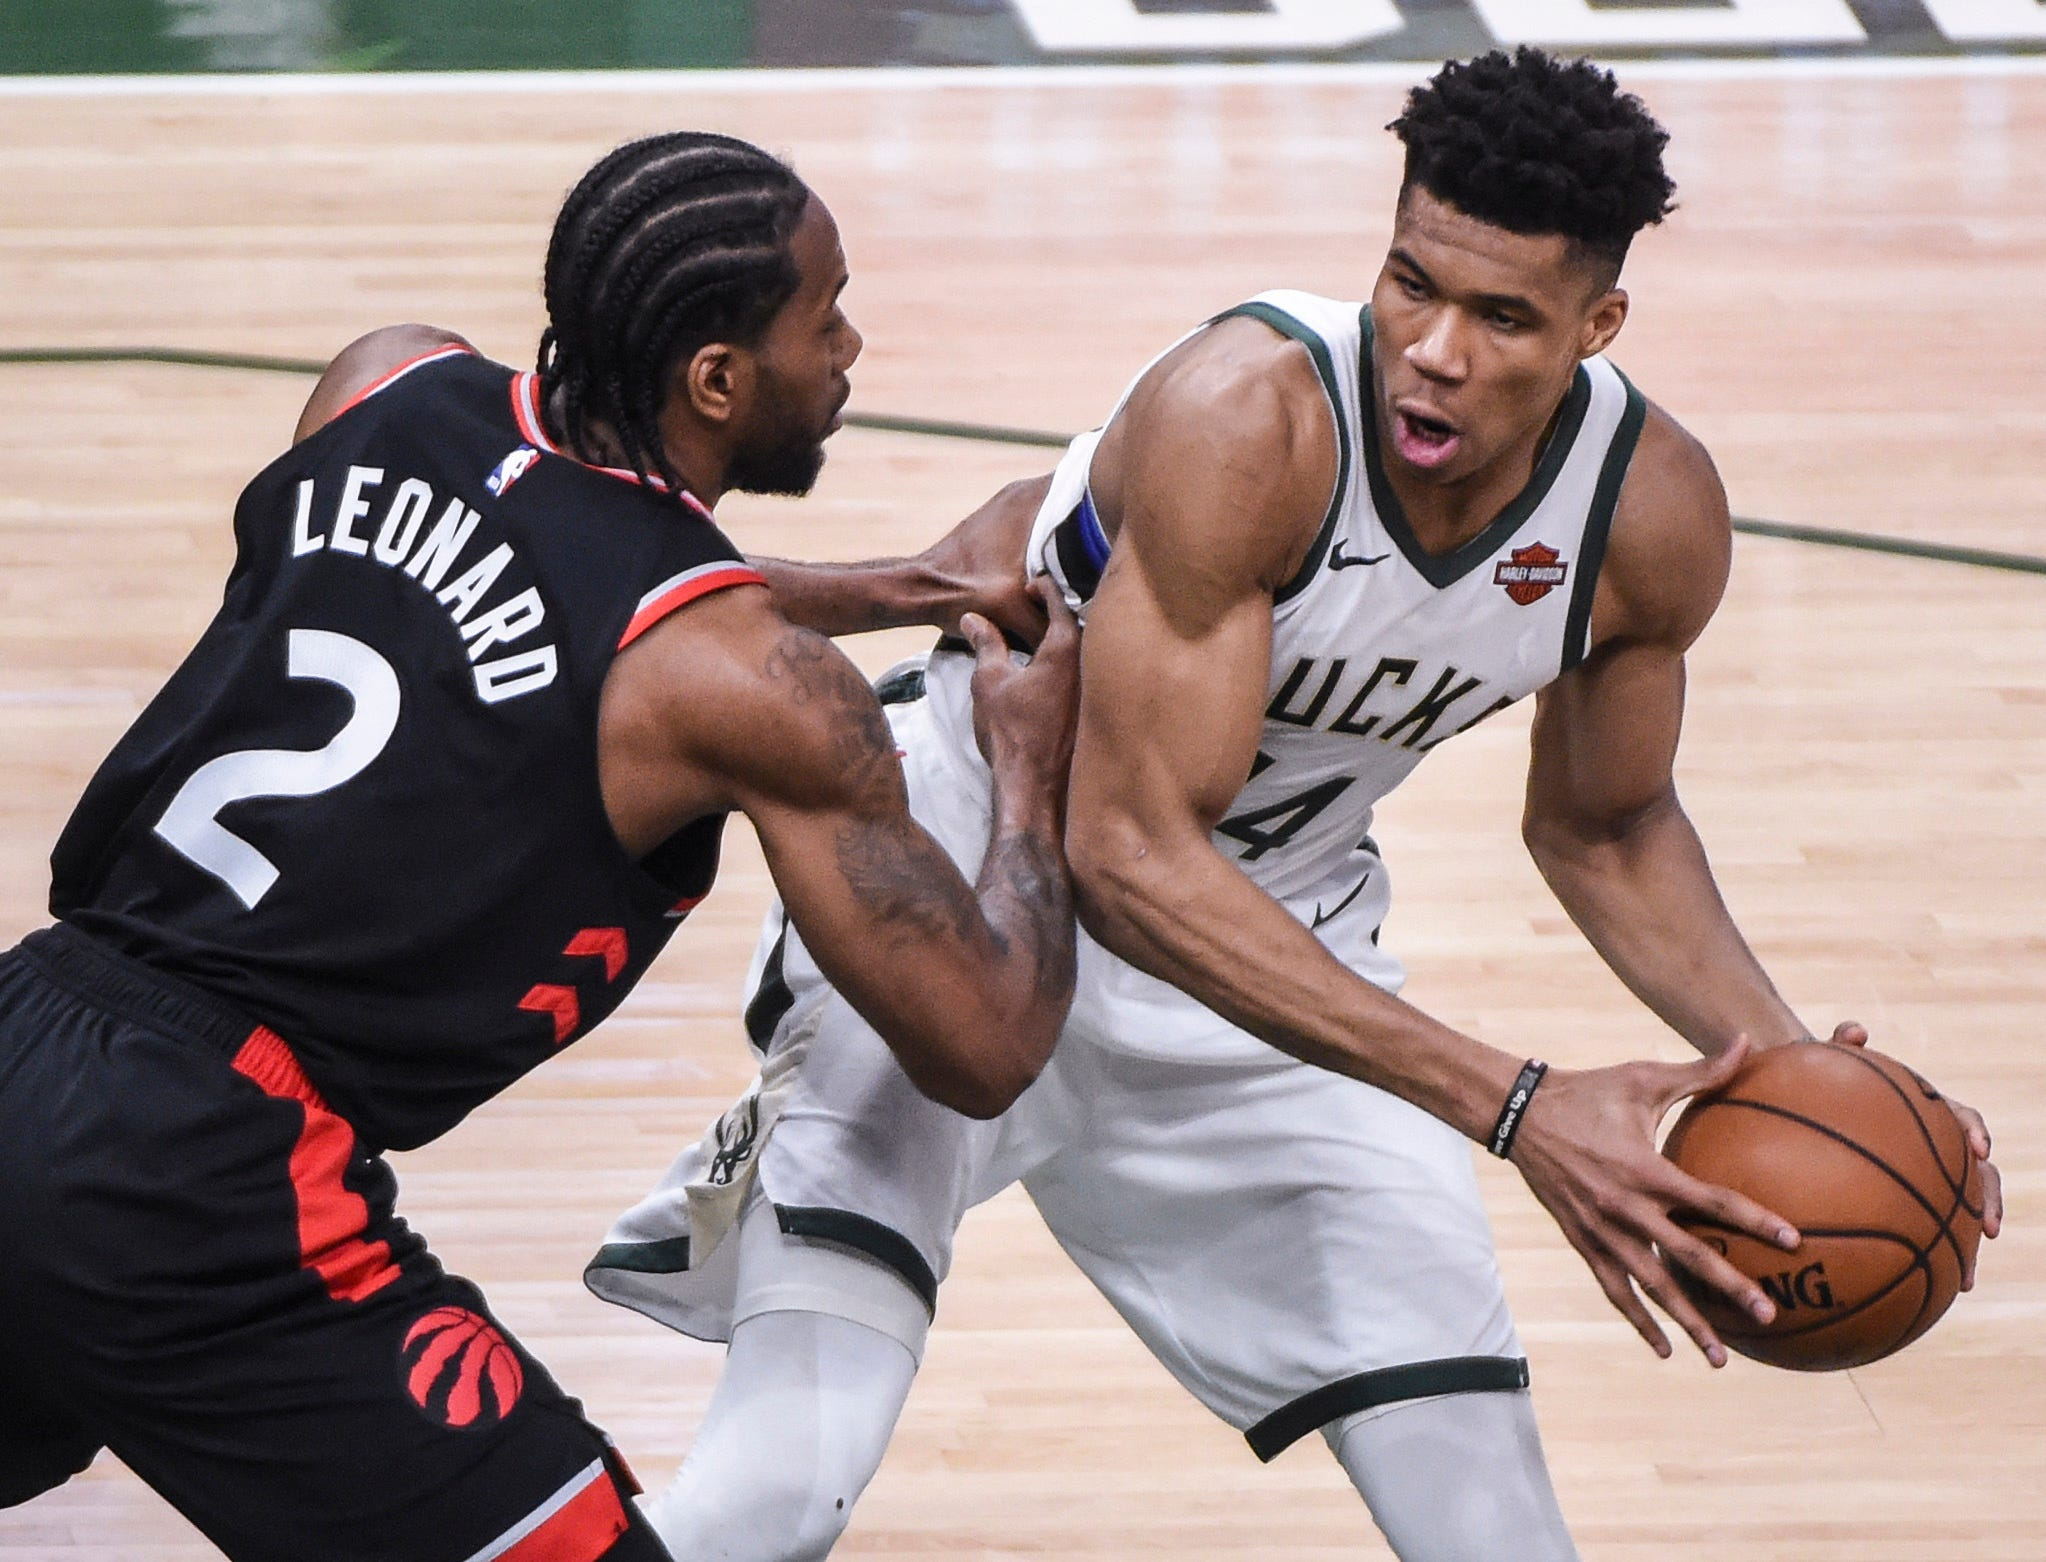 May 15: Bucks forward Giannis Antetokounmpo (34) looks for room to work against Raptors defender Kawhi Leonard (2) during Game 1 of the Eastern Conference finals in Milwaukee.